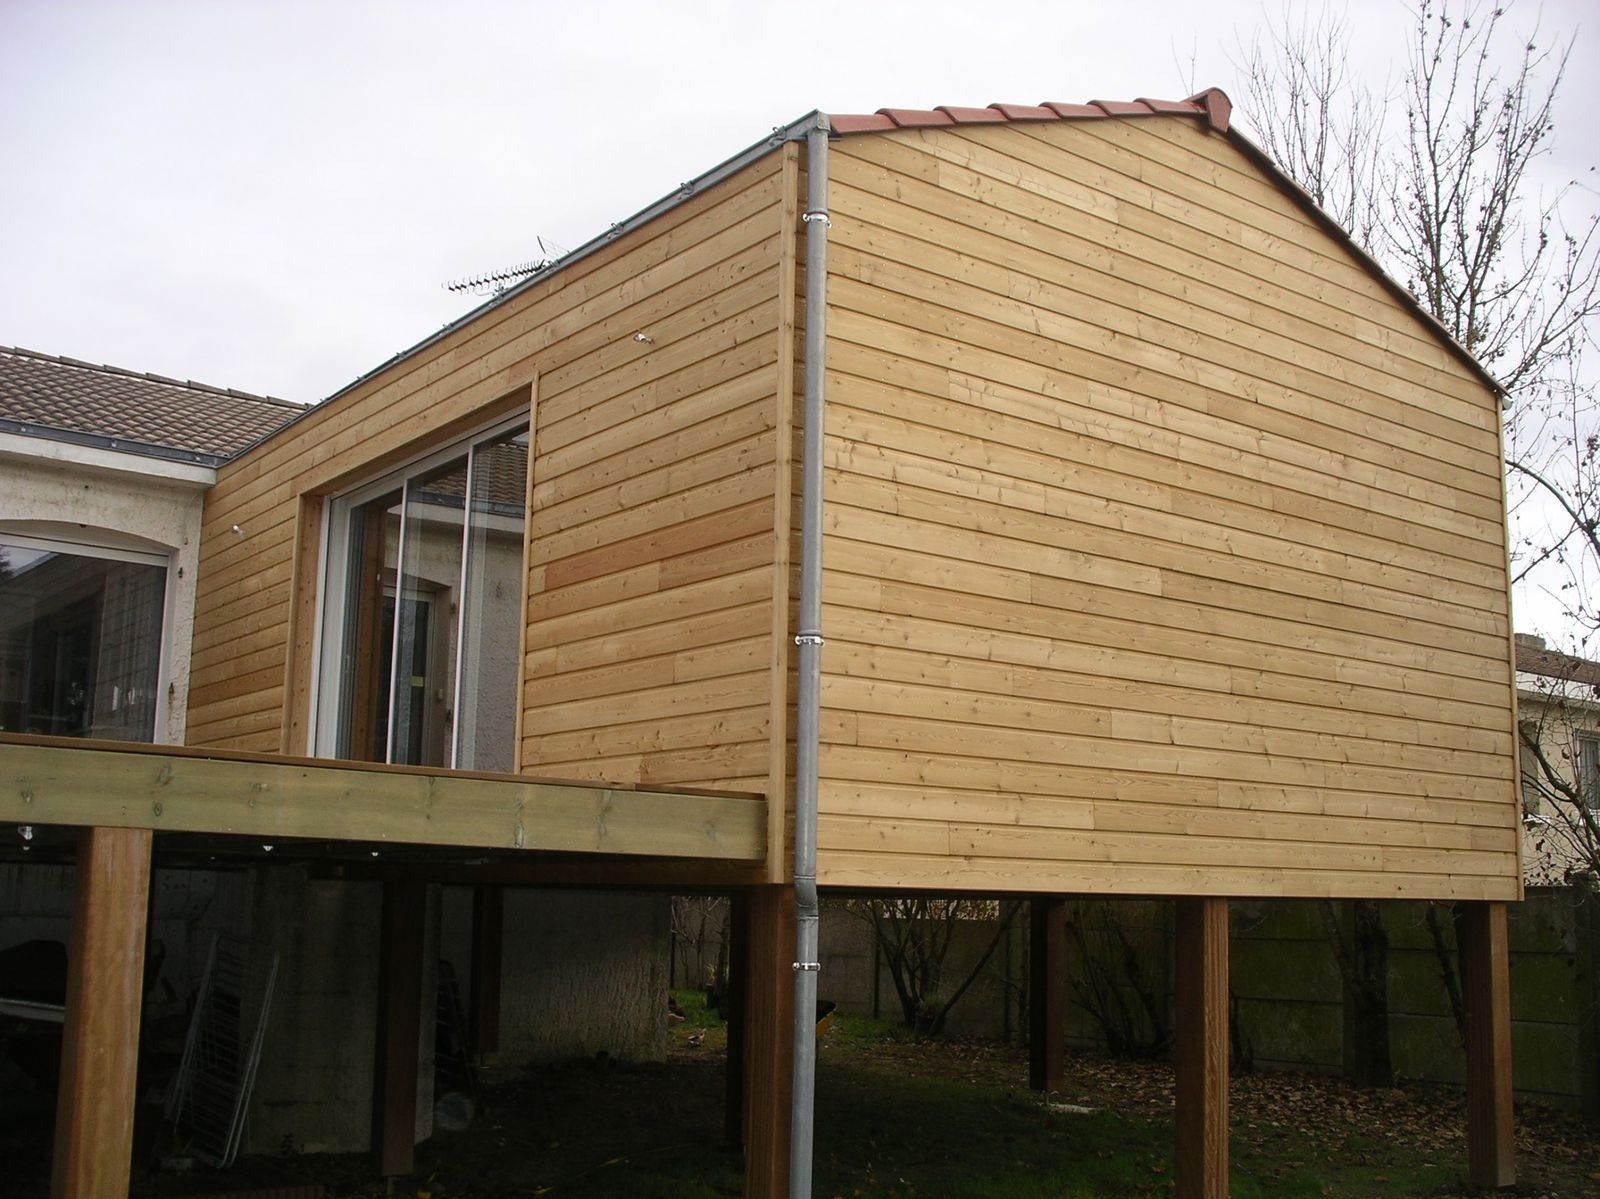 Extension maison bois sur pilotis for Cout agrandissement garage